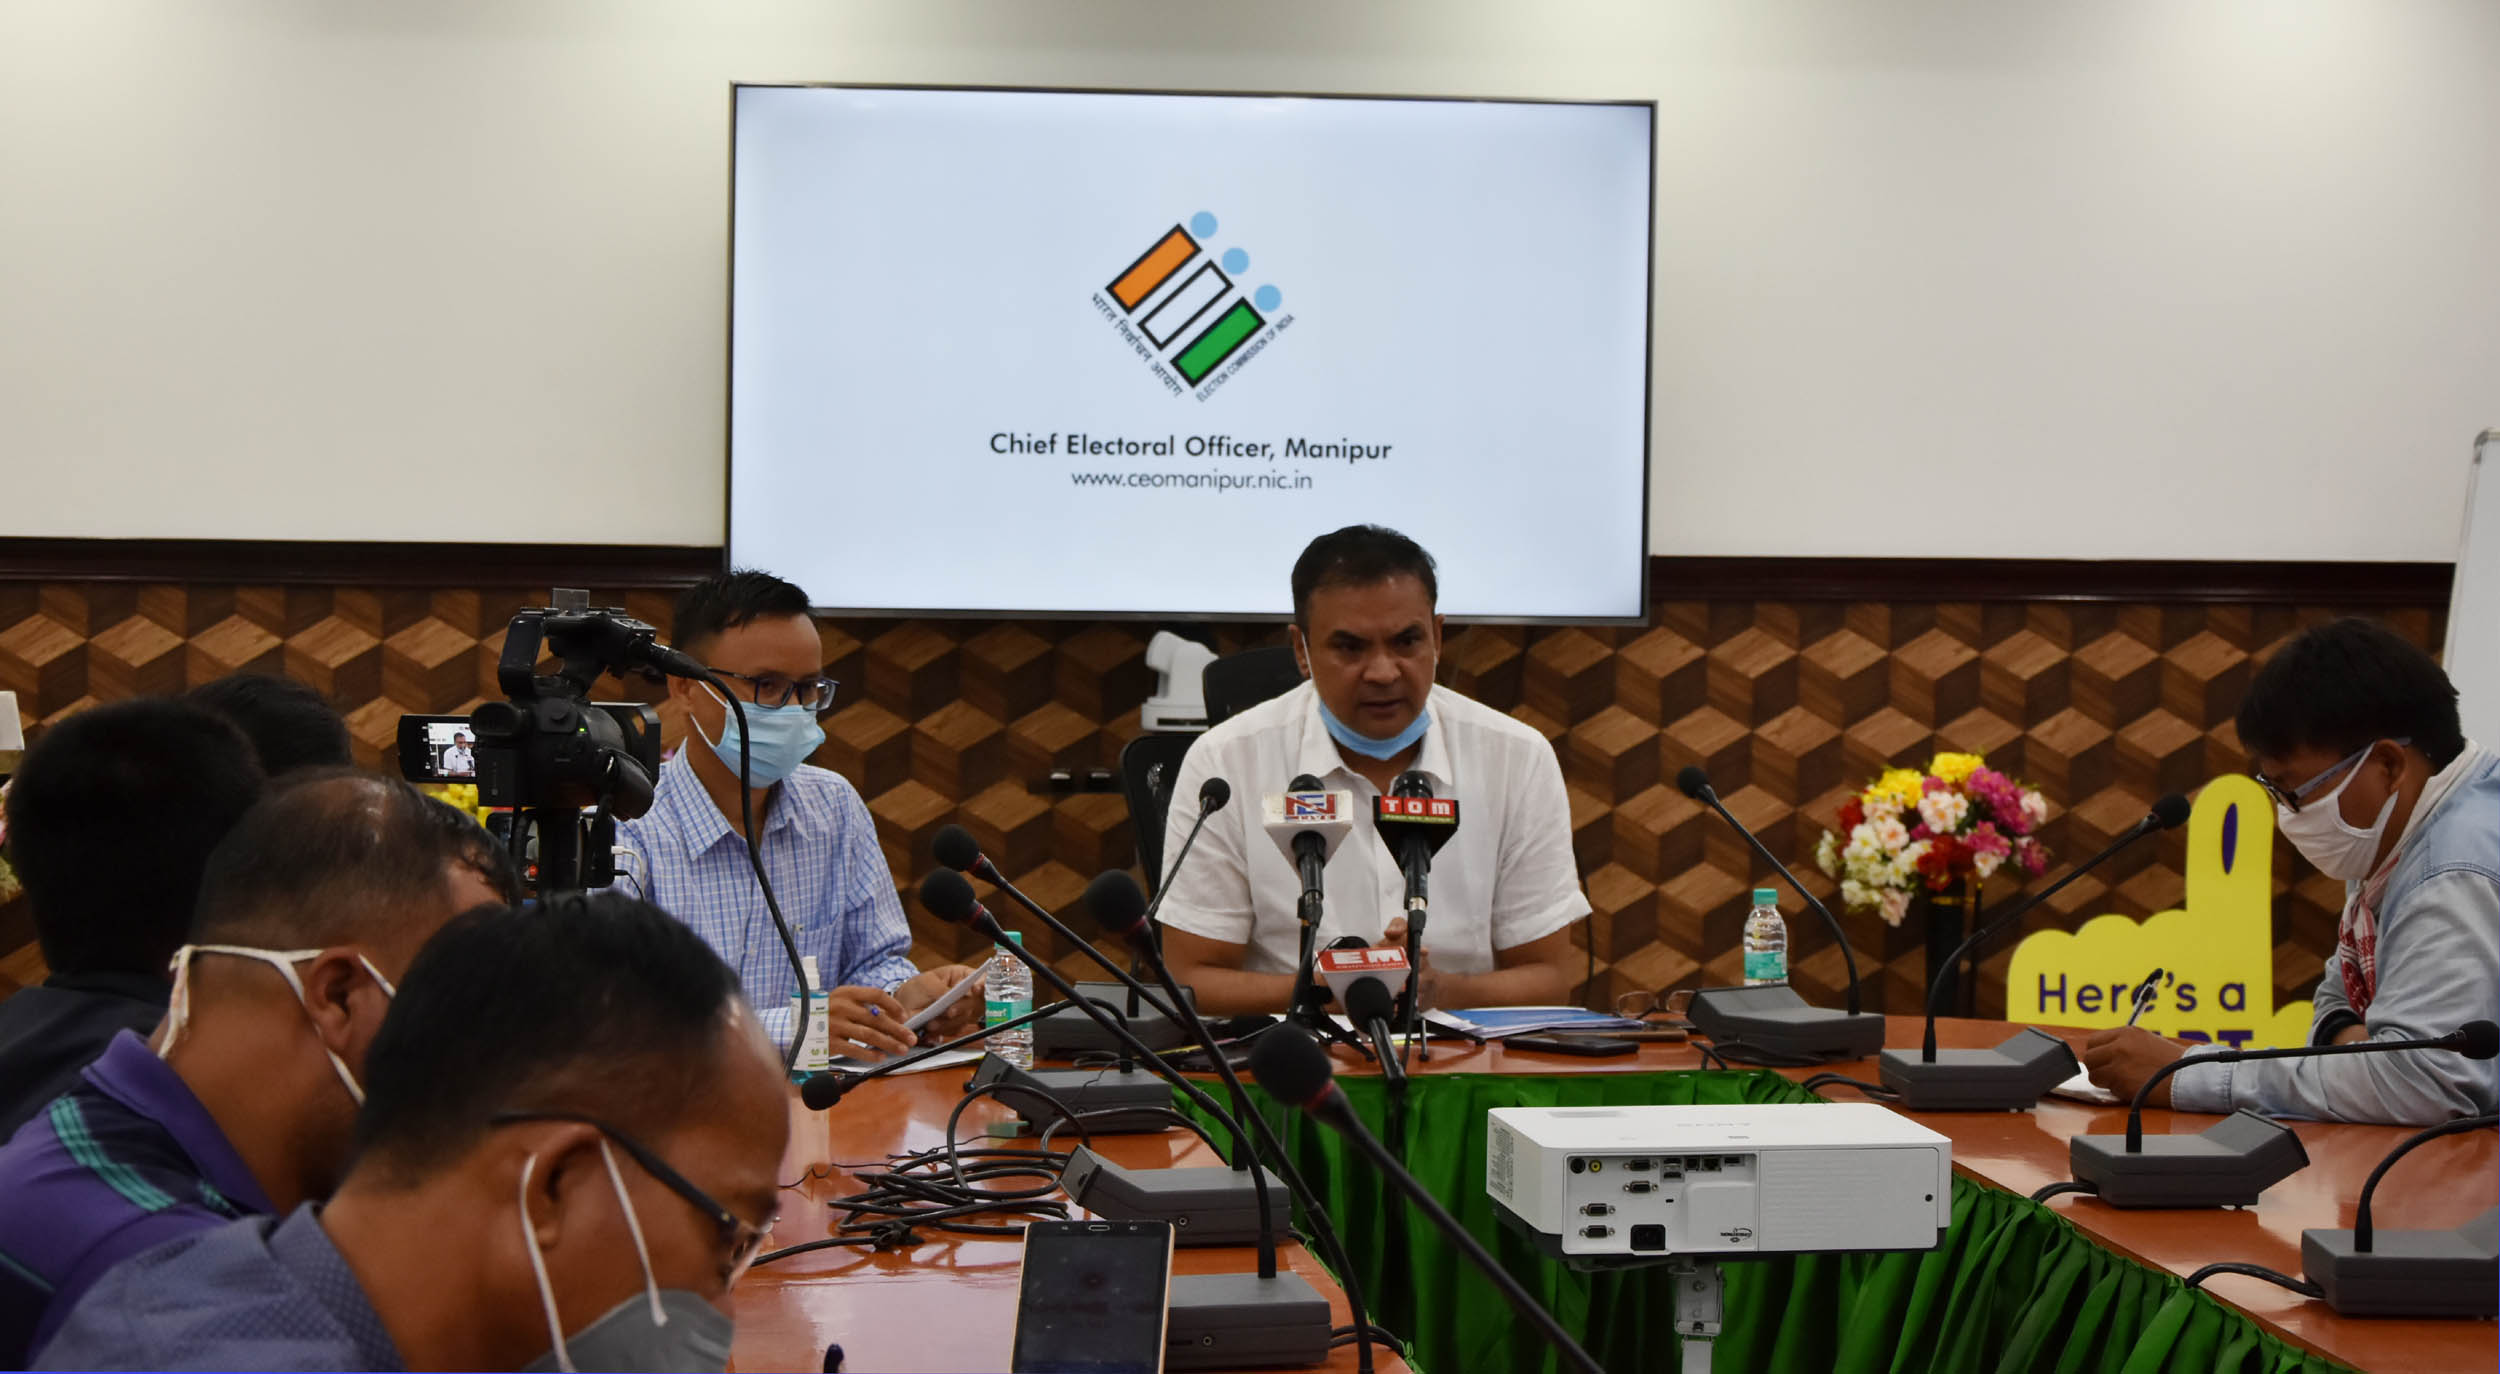 Stage set for by-elections, says CEO; 1,57,658 voters from 5 ACs to go to polls on Nov 7